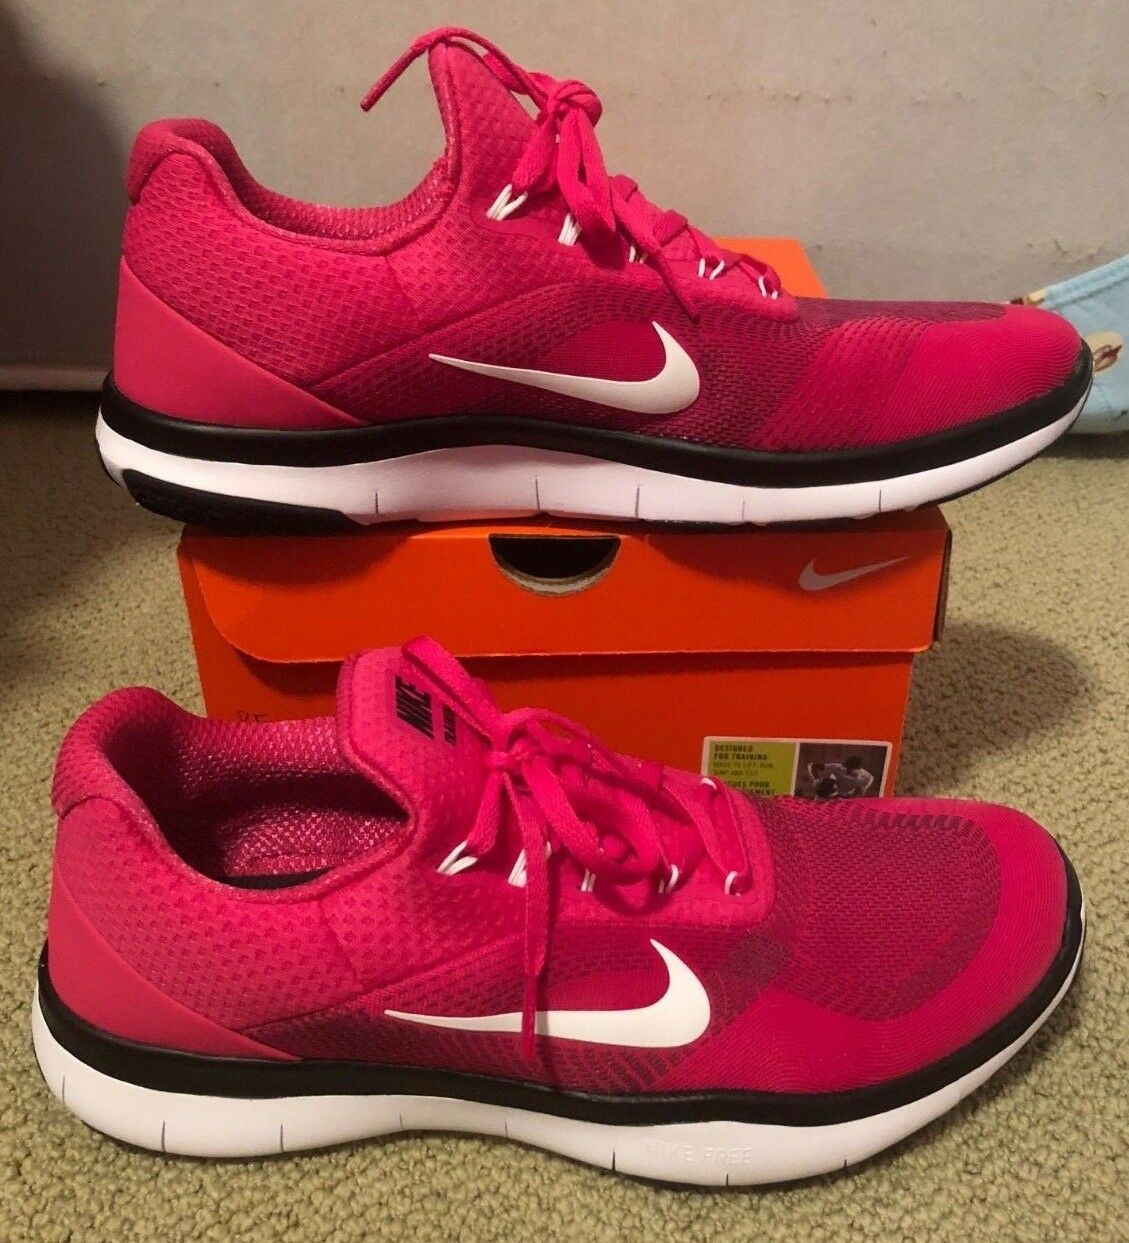 Nike Free Trainer V7 TB Pink Size 10.5 Men's Training shoes Worn 1 Time